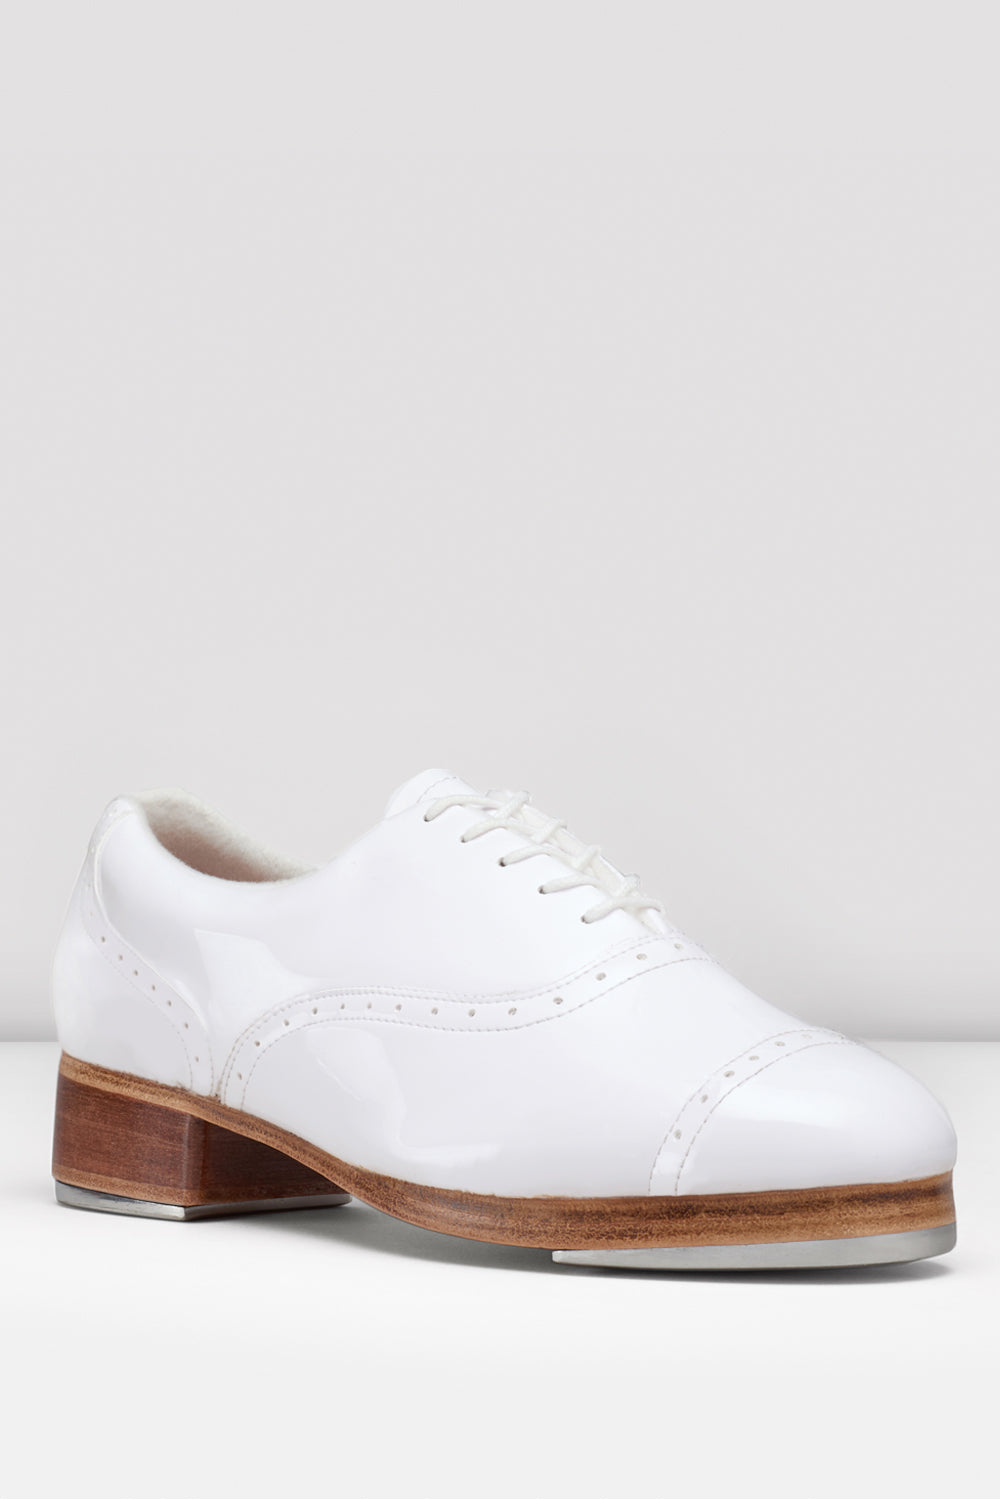 White patent Bloch Ladies Jason Samuels Smith Tap Shoes single shoe side view focus on toe of shoe